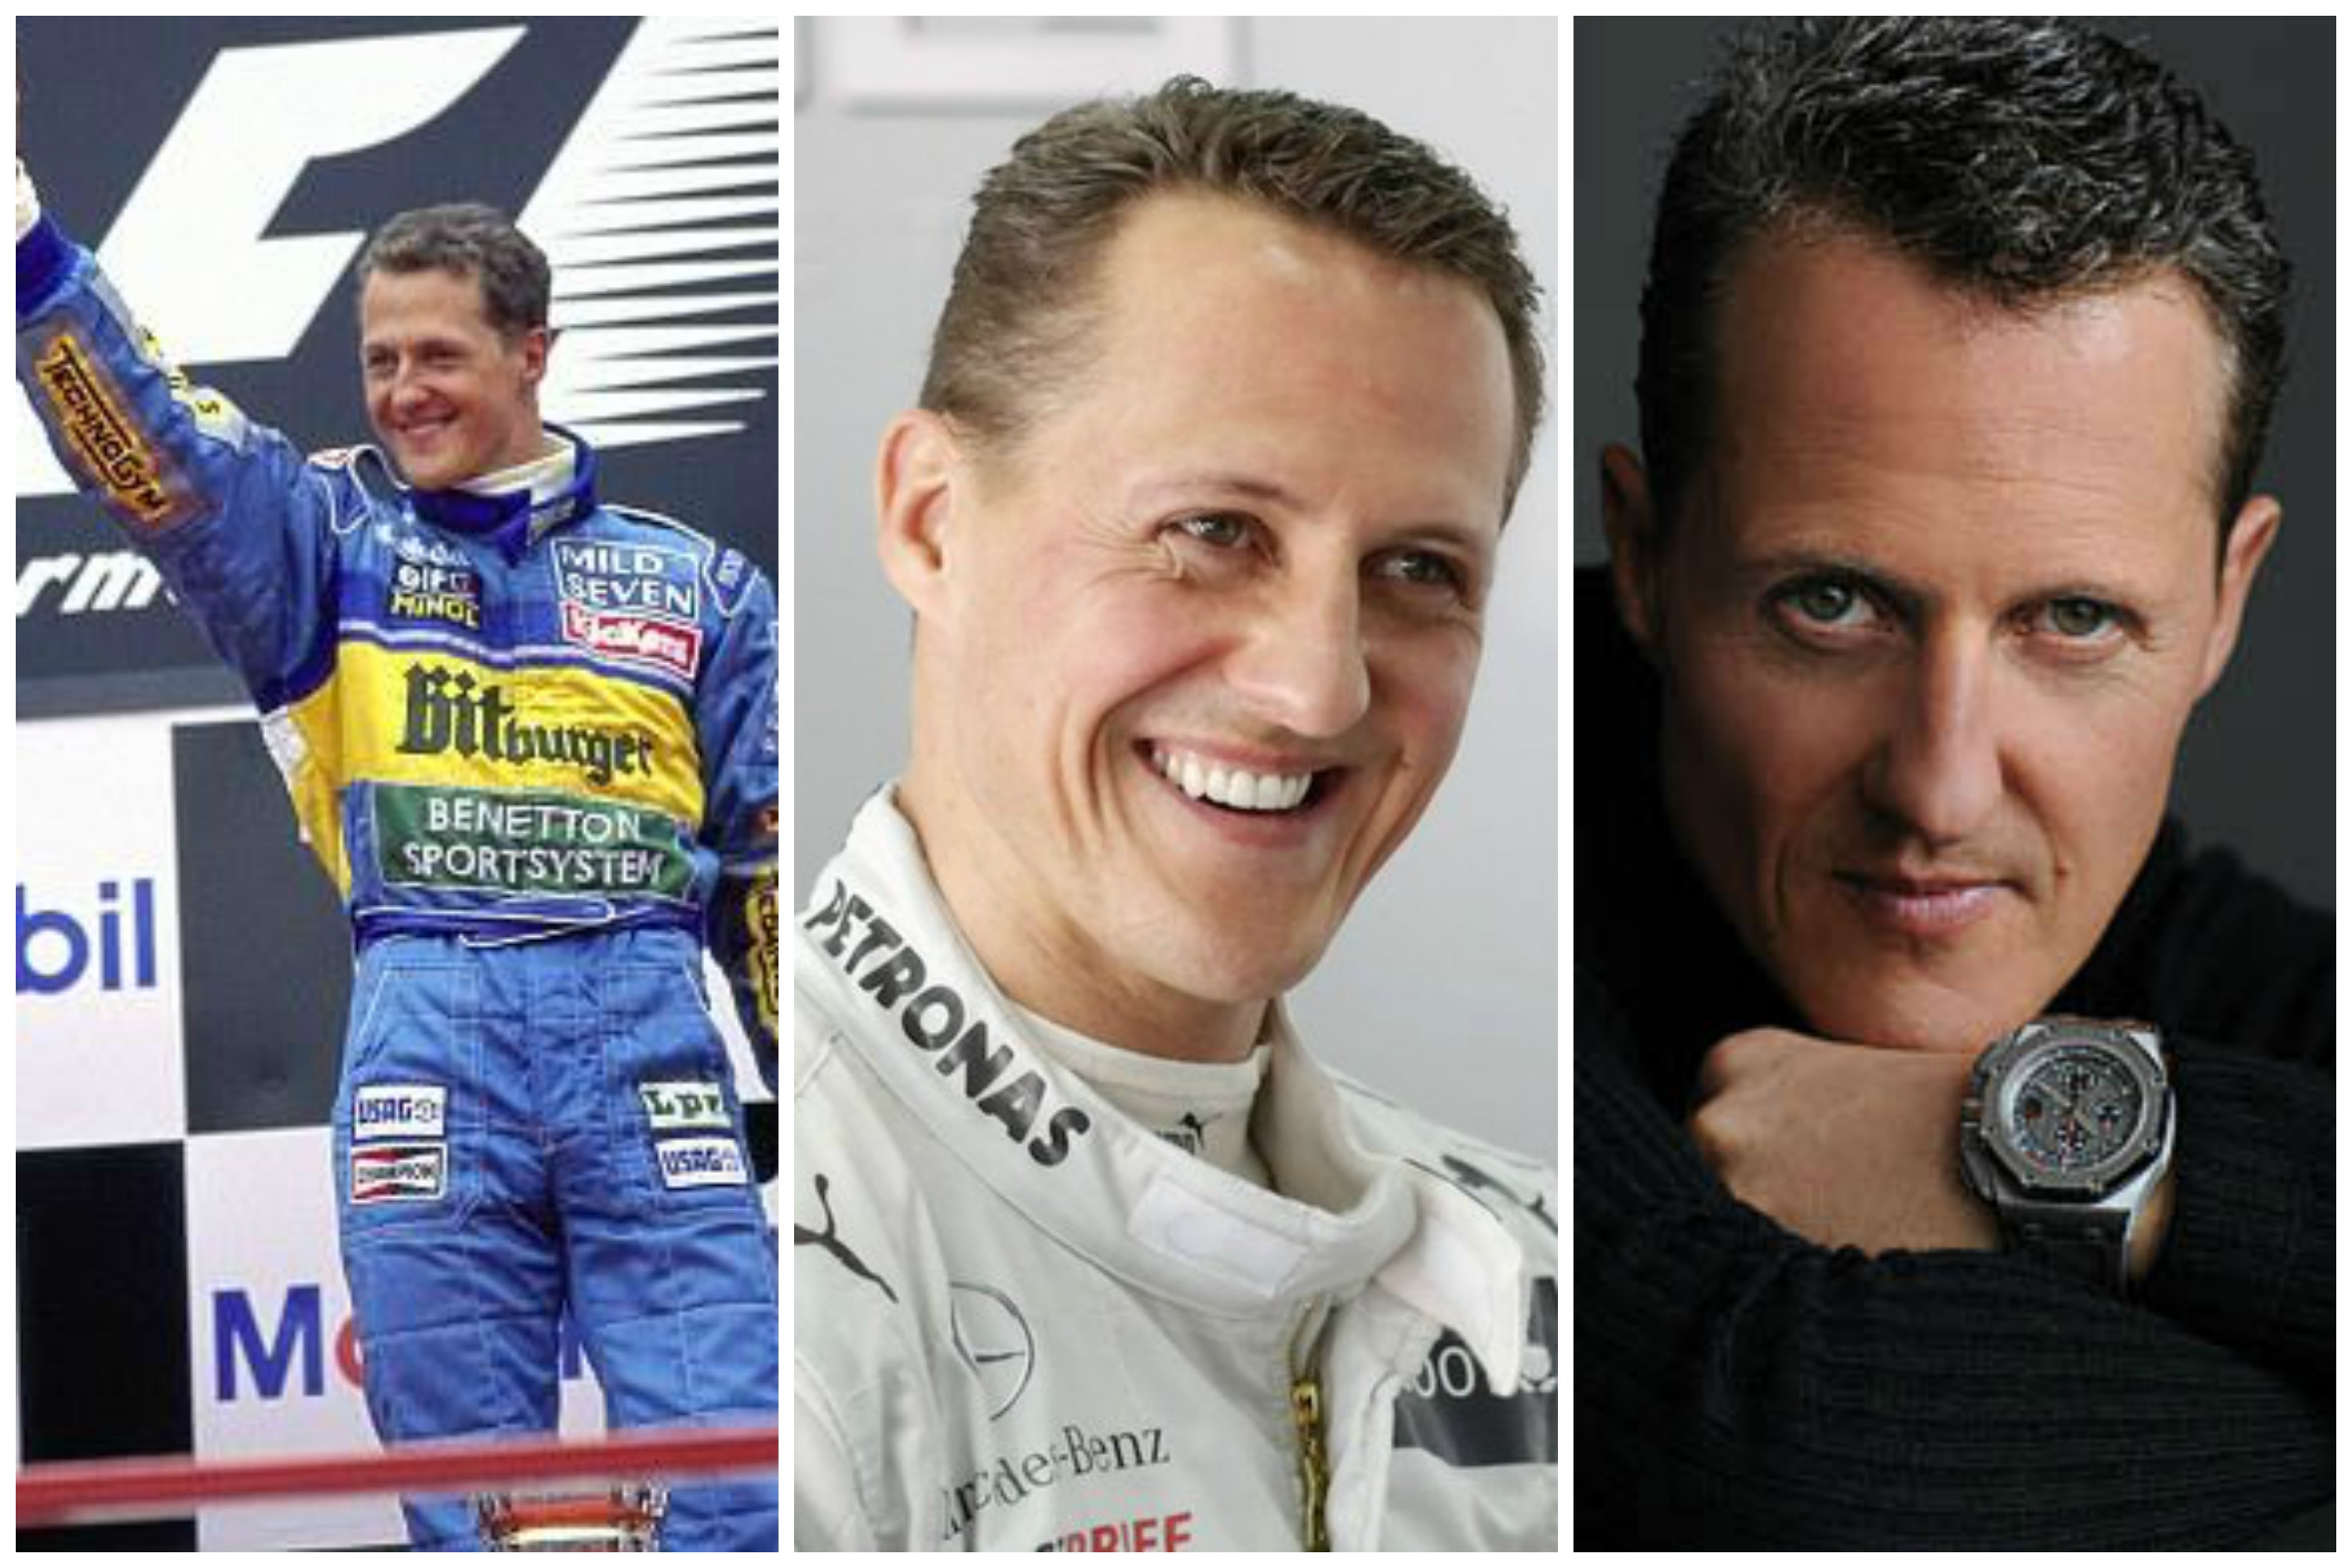 How Much is Michael Schumacher's Net Worth?